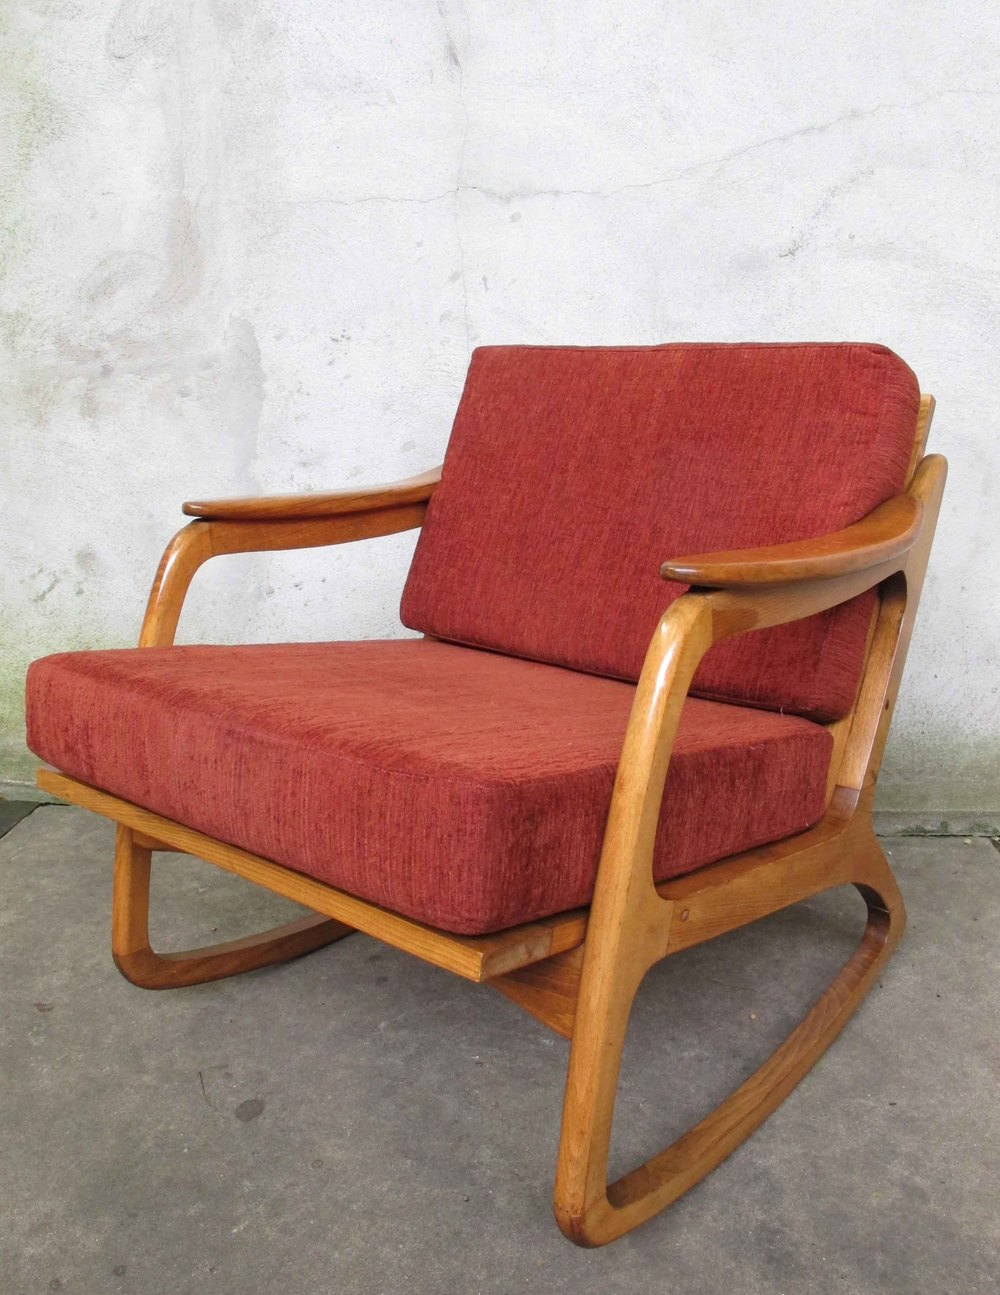 PEARSALL STYLE MID CENTURY CANE BACKED ROCKING CHAIR